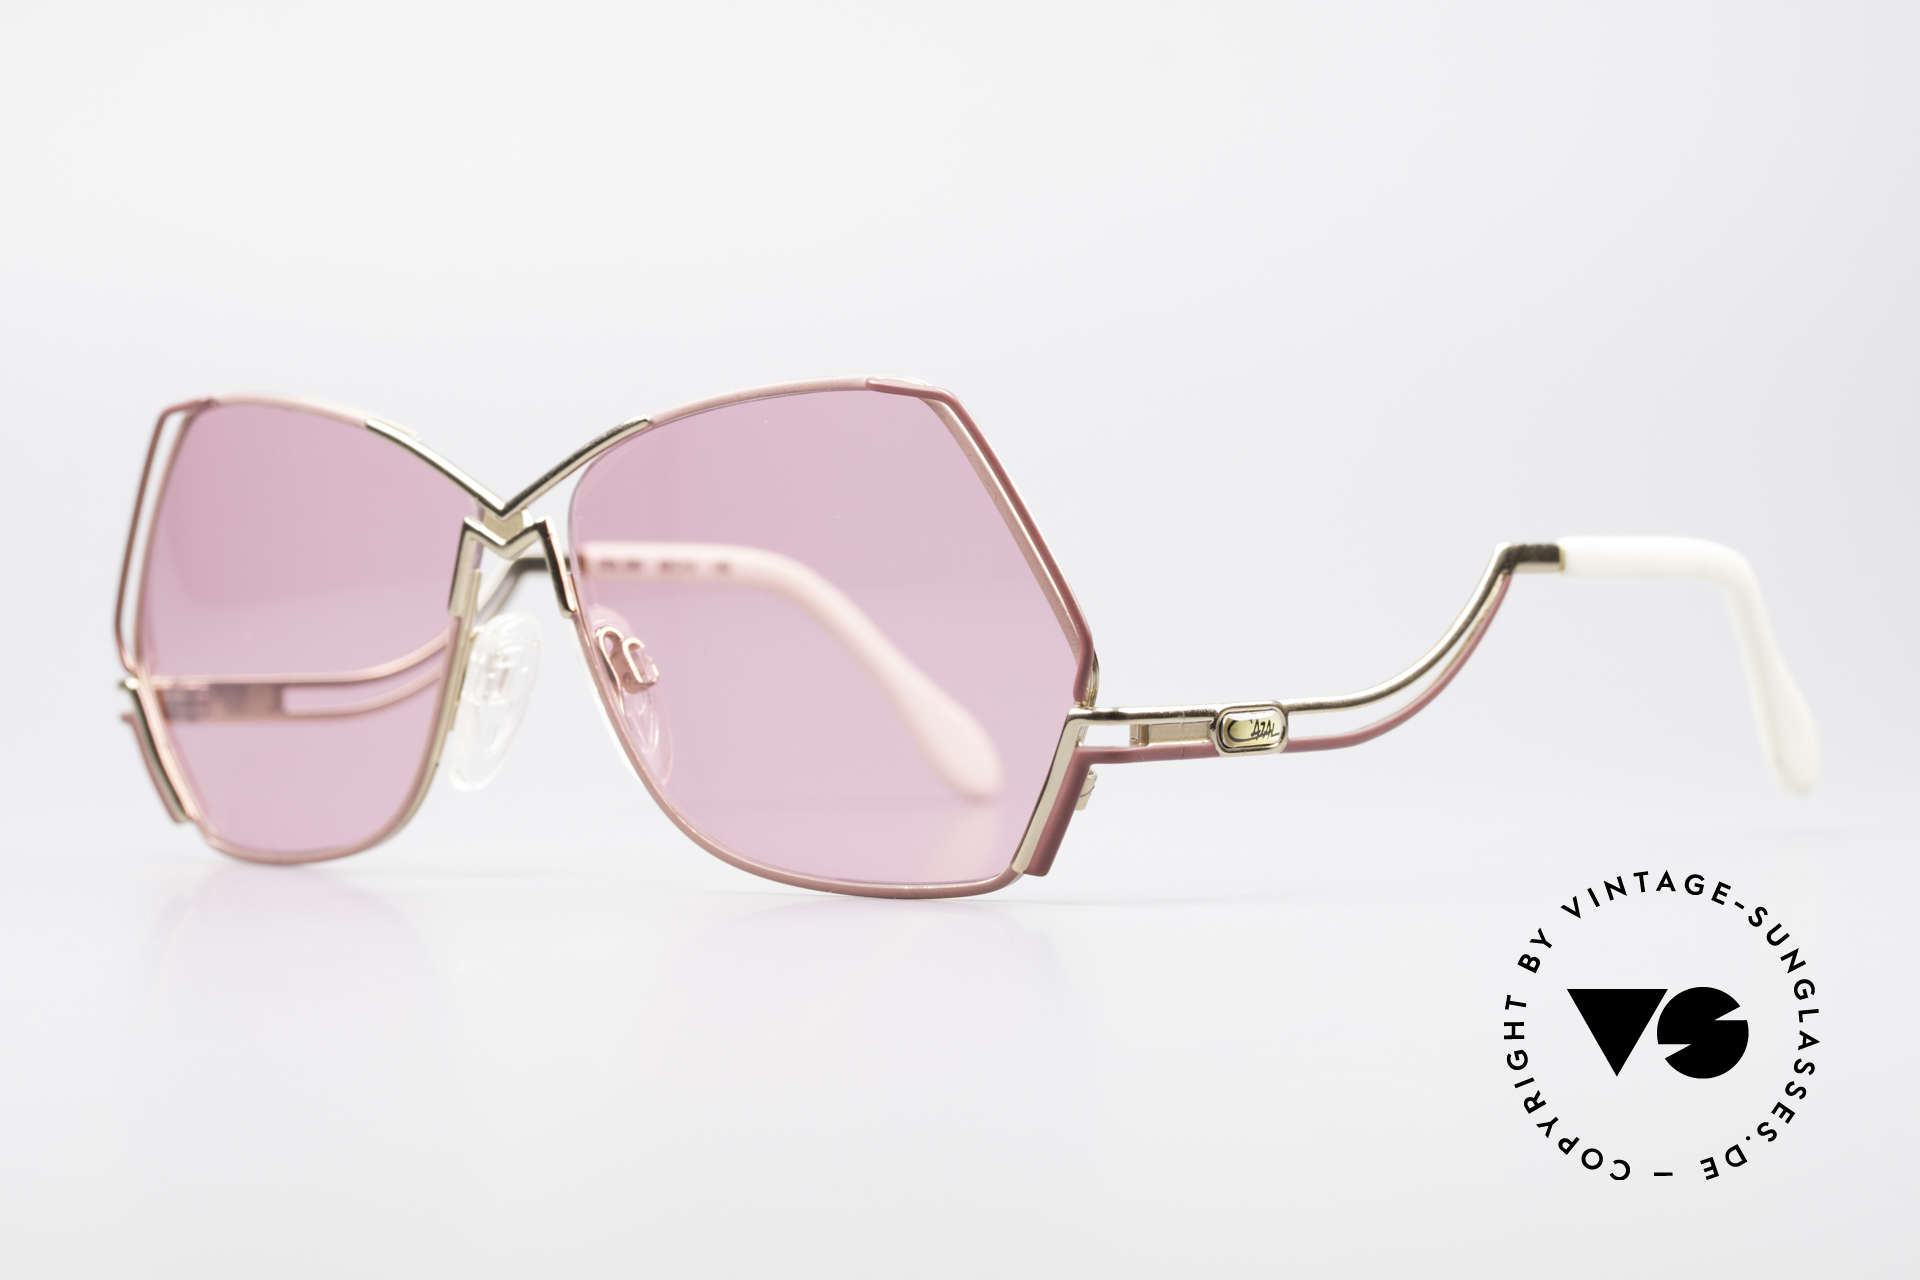 Cazal 226 Pink Vintage Ladies Sunglasses, a true eye-catcher; just beautiful and simply unique, Made for Women